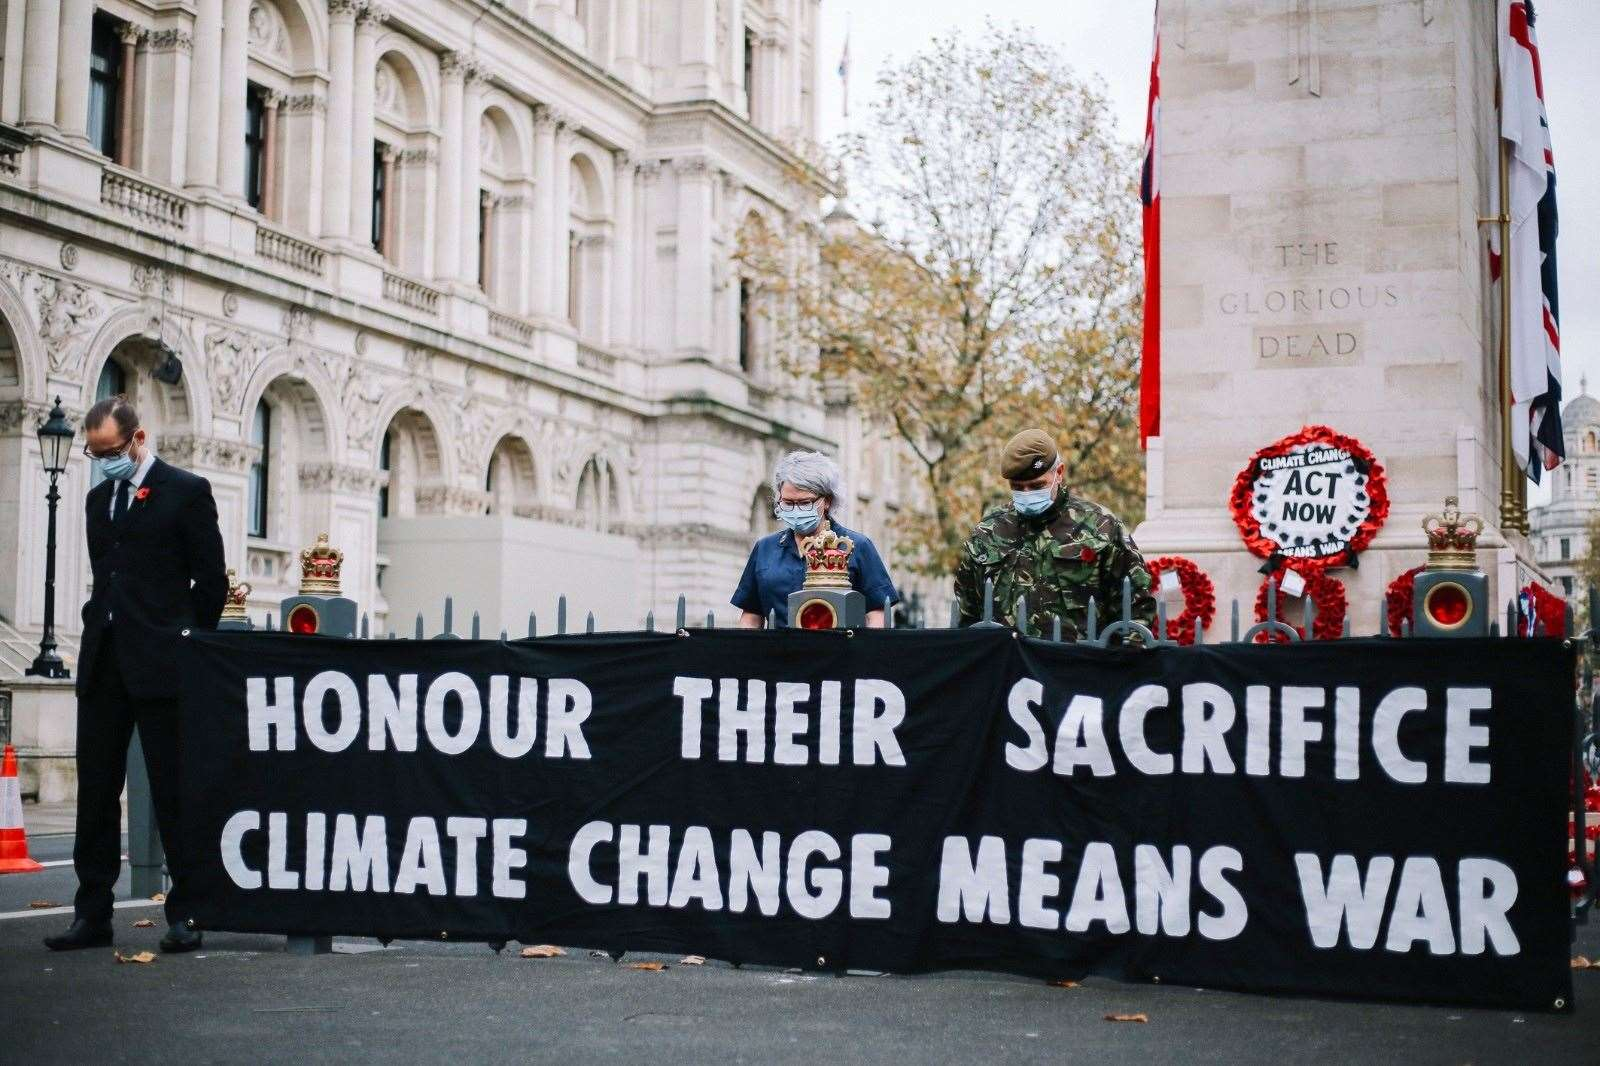 Met Police criticised over Extinction Rebellion's 'hijacking' of Cenotaph on Armistice Day